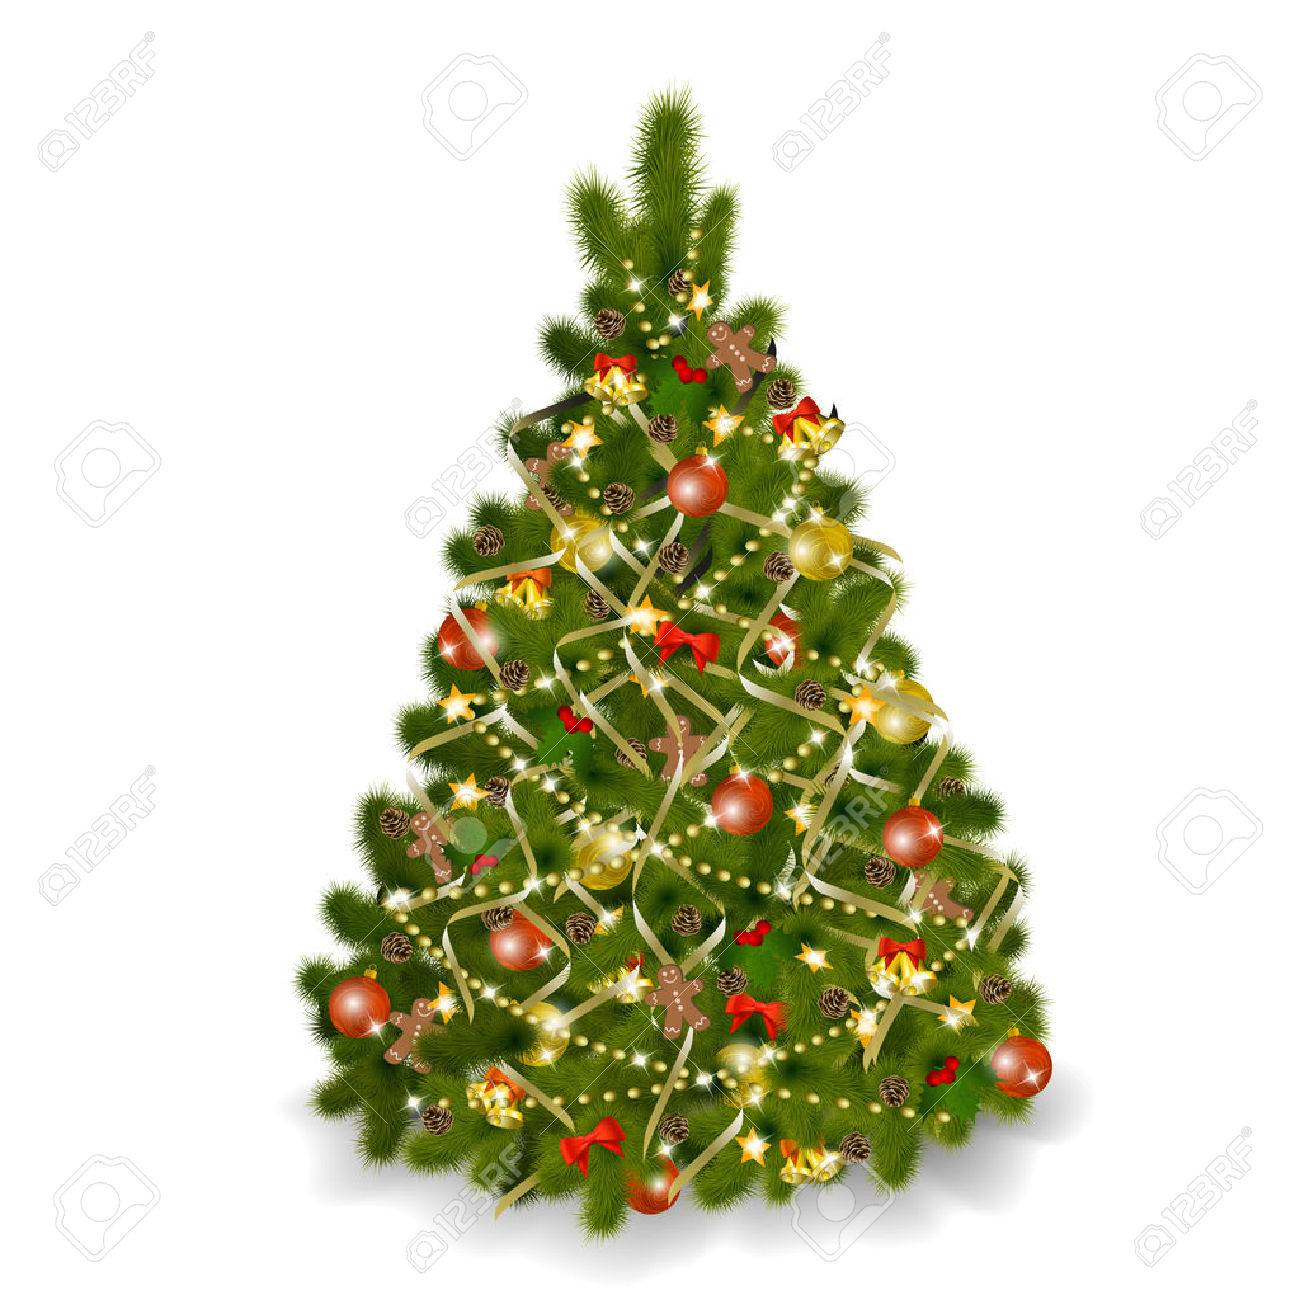 Christmas tree on white background.   illustration Stock Vector - 8687444